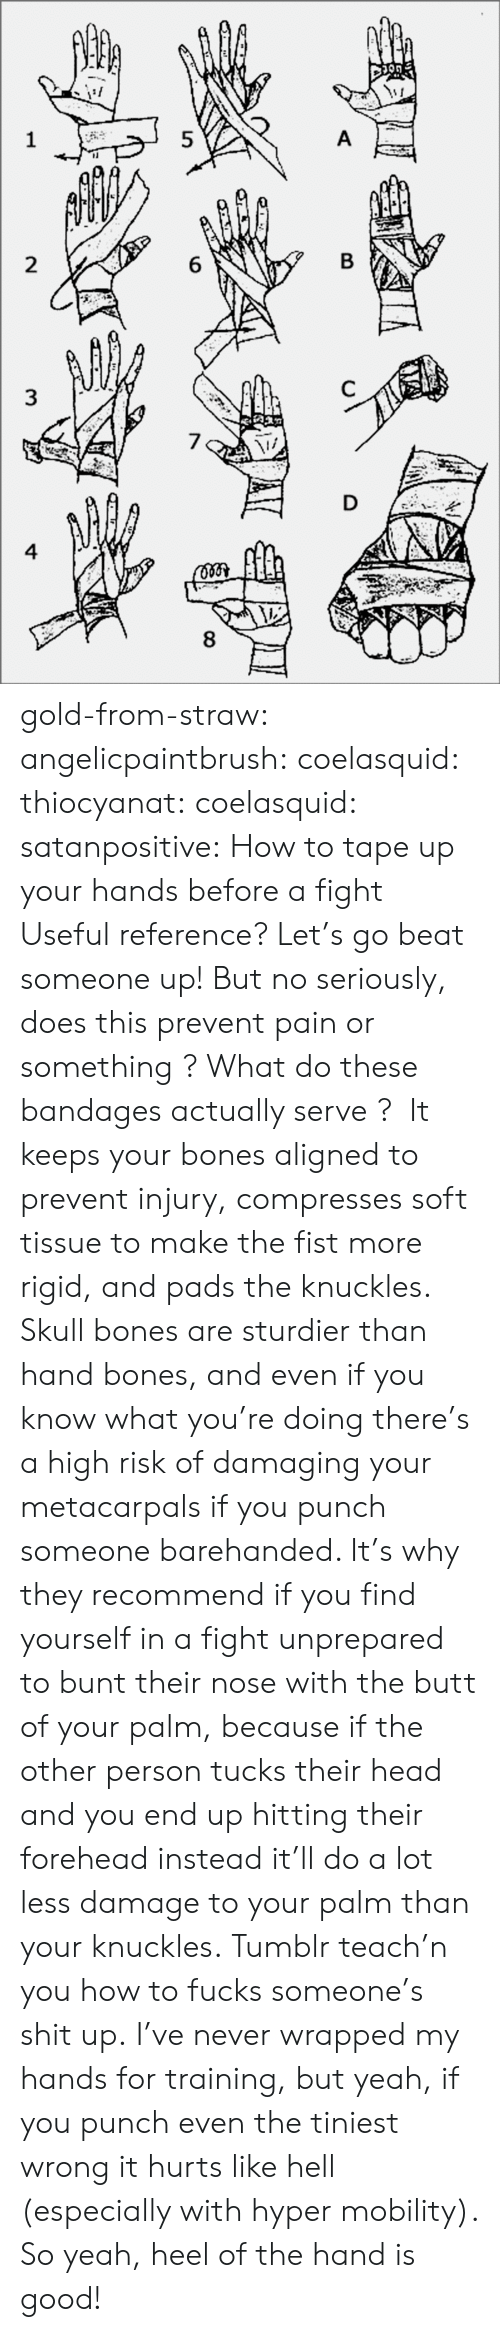 The Butt: 8  6  5  3  4 gold-from-straw:  angelicpaintbrush:  coelasquid:  thiocyanat:  coelasquid:  satanpositive:  How to tape up your hands before a fight  Useful reference?  Let's go beat someone up! But no seriously, does this prevent pain or something ? What do these bandages actually serve ?   It keeps your bones aligned to prevent injury, compresses soft tissue to make the fist more rigid, and pads the knuckles. Skull bones are sturdier than hand bones, and even if you know what you're doing there's a high risk of damaging your metacarpals if you punch someone barehanded. It's why they recommend if you find yourself in a fight unprepared to bunt their nose with the butt of your palm, because if the other person tucks their head and you end up hitting their forehead instead it'll do a lot less damage to your palm than your knuckles.  Tumblr teach'n you how to fucks someone's shit up.   I've never wrapped my hands for training, but yeah, if you punch even the tiniest wrong it hurts like hell (especially with hyper mobility). So yeah, heel of the hand is good!